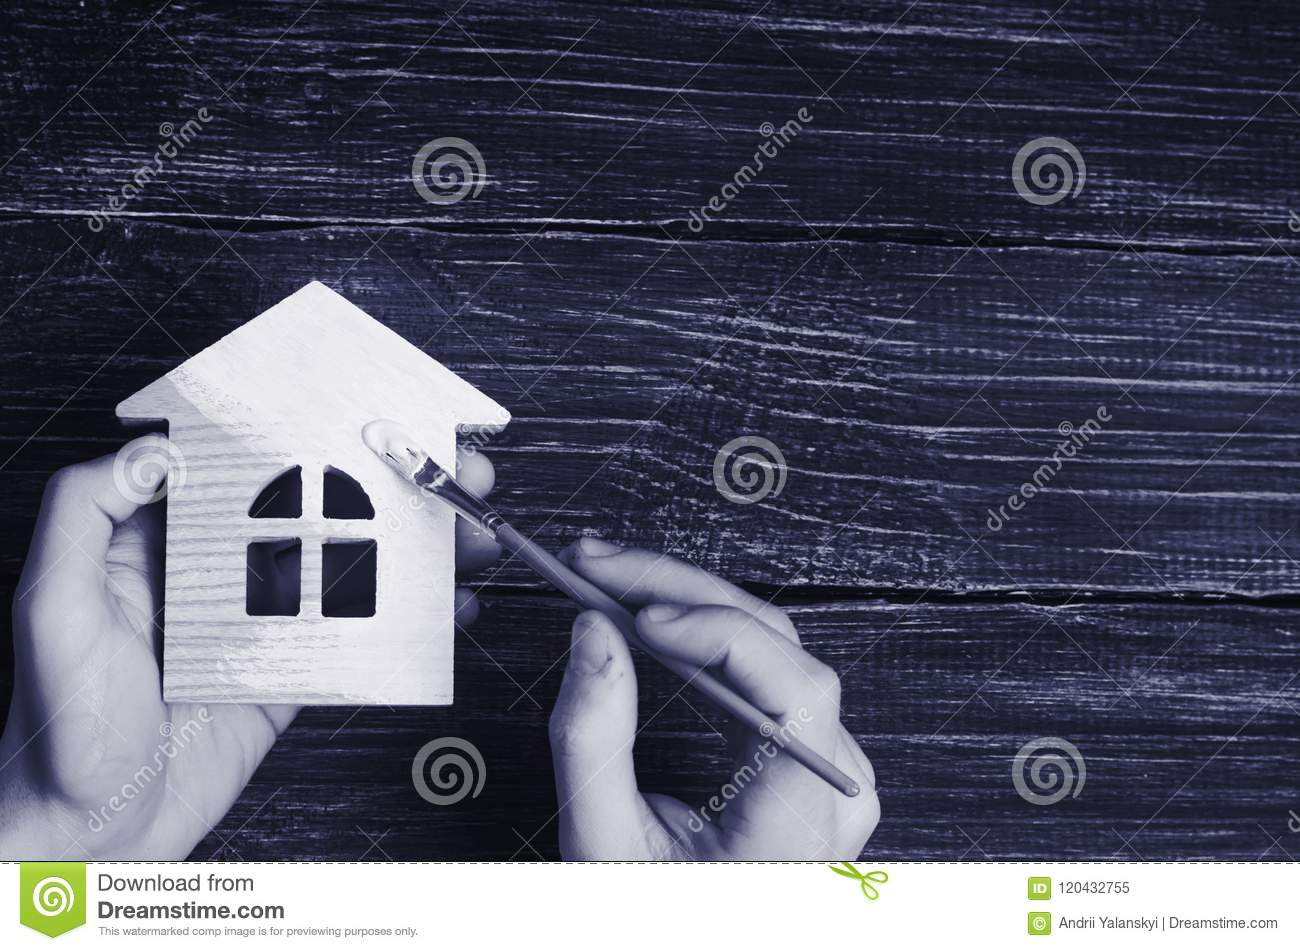 Hand paints a house. Concept of repair, hobby, work. Repair